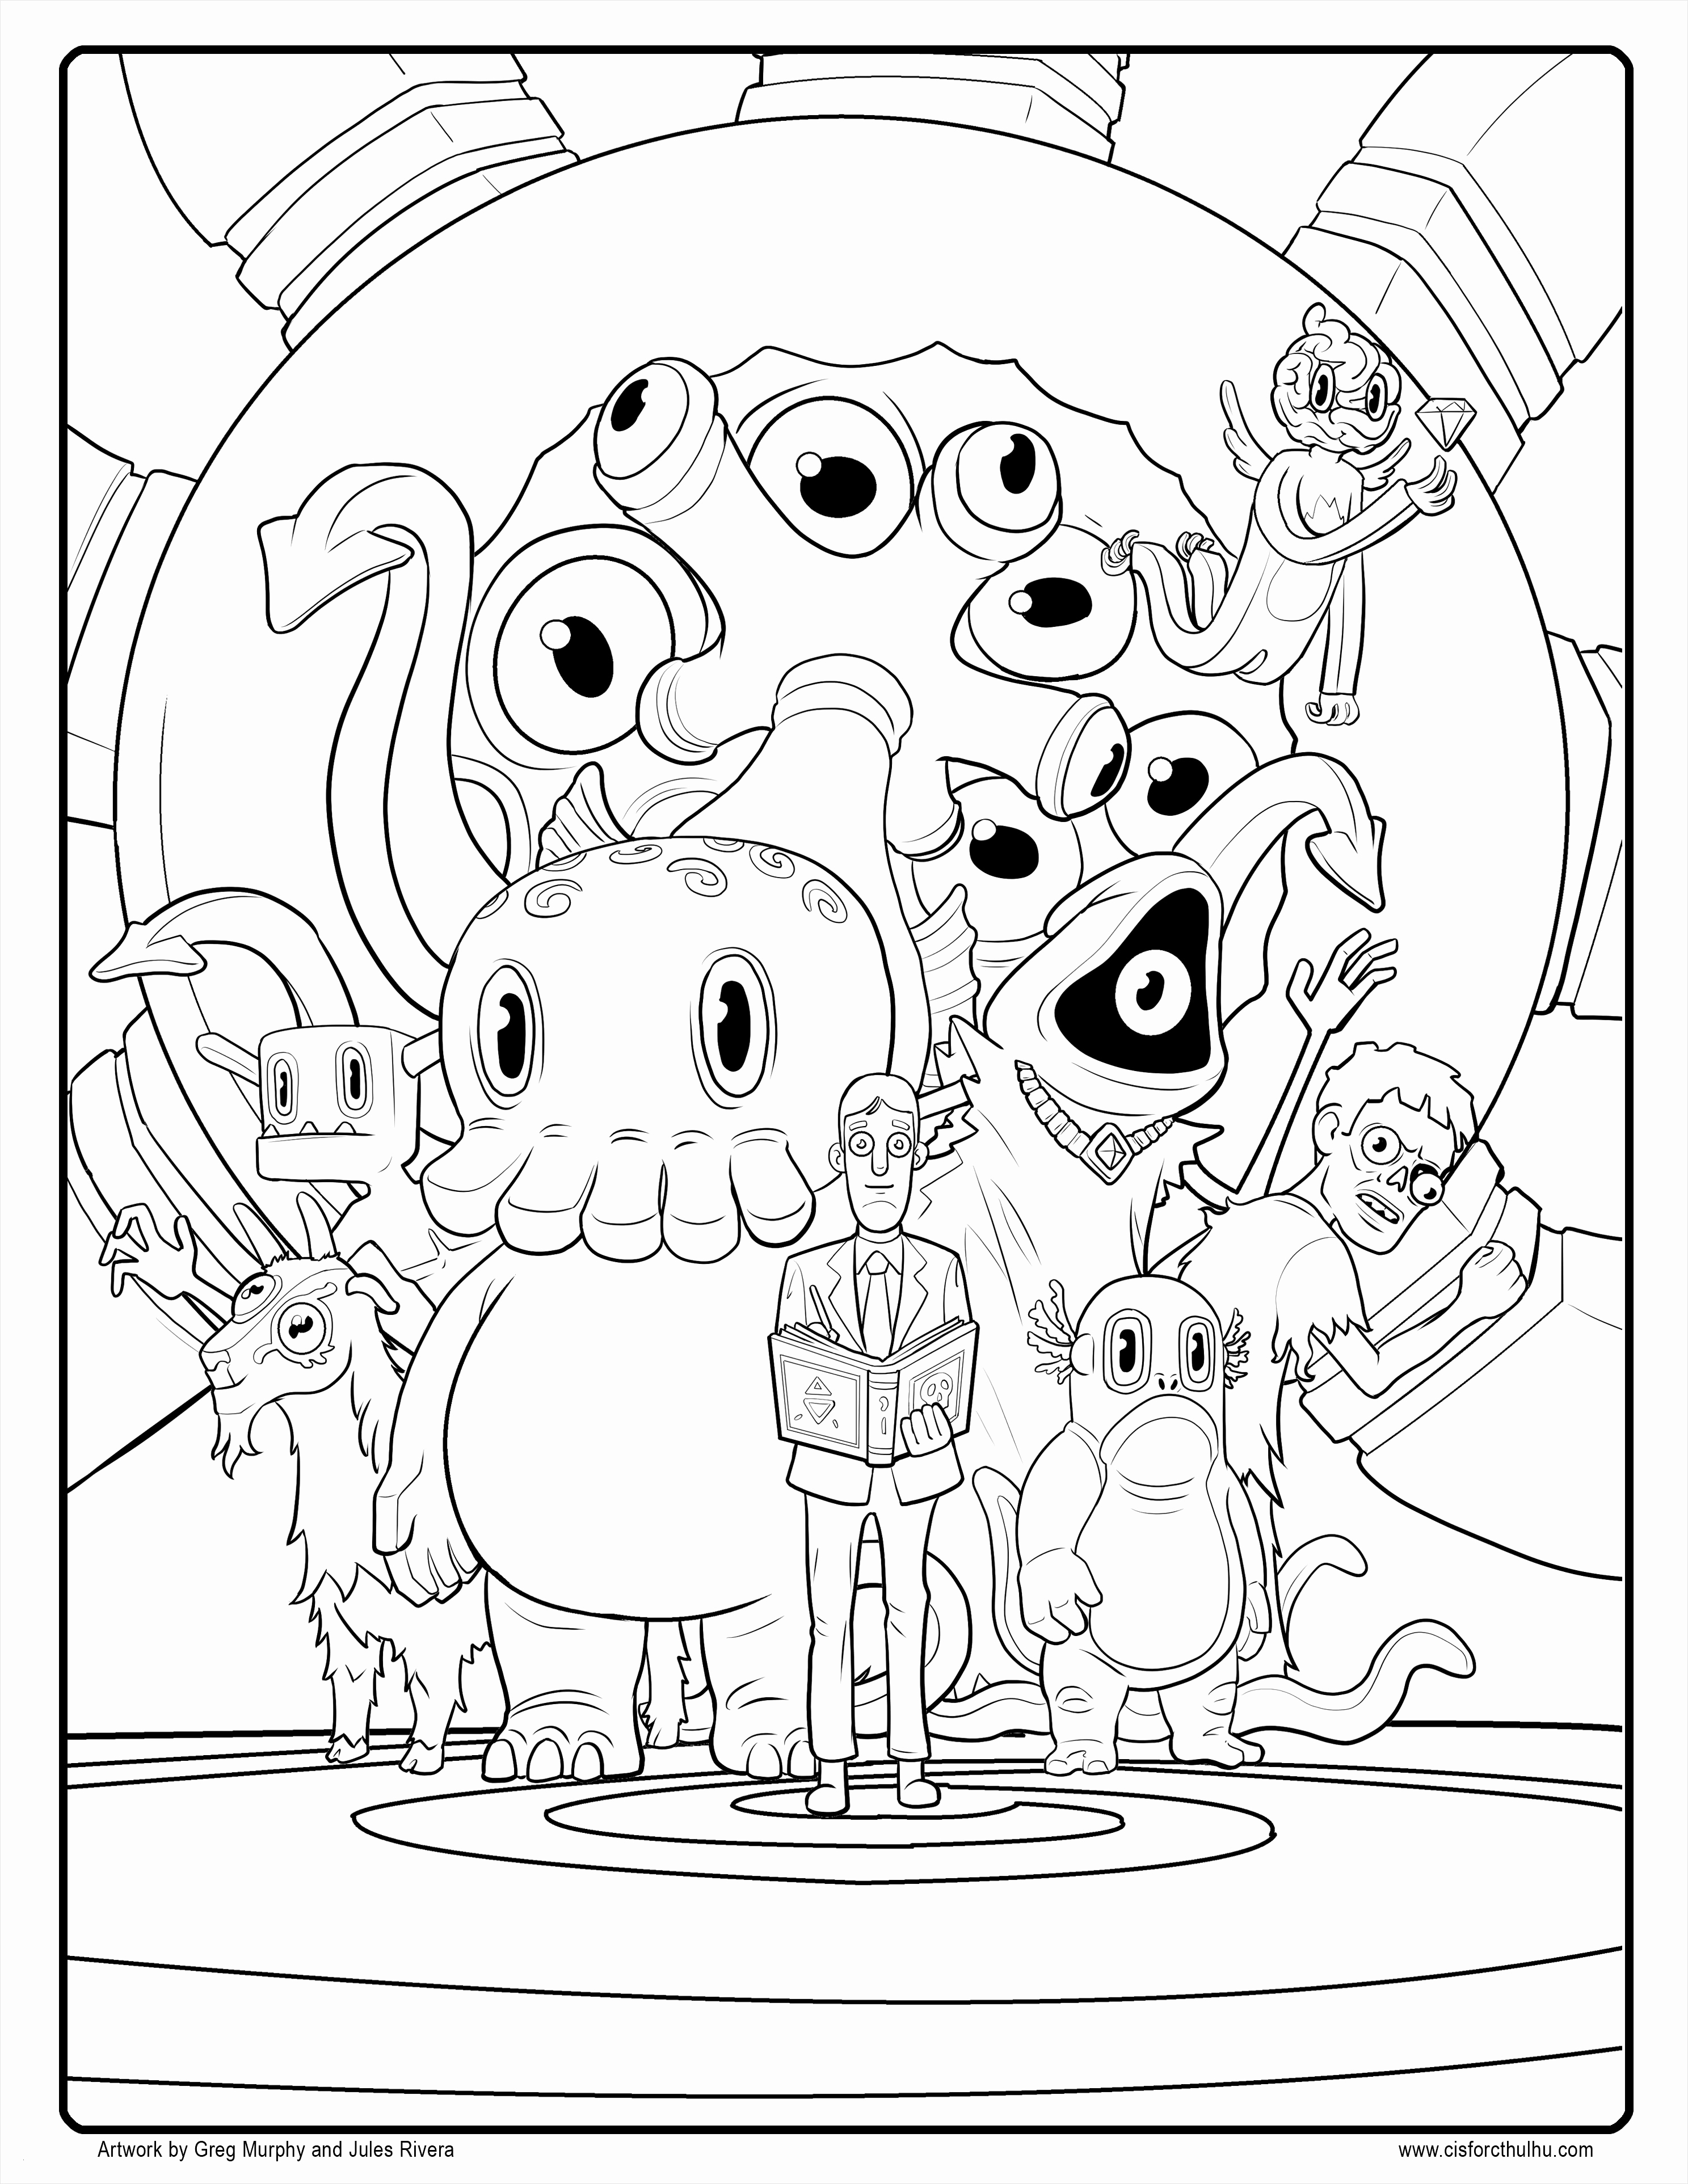 noah's ark coloring pages printable Collection-Children s Church Coloring Pages Elegant Inspirational Black and White Coloring Pages 13-e